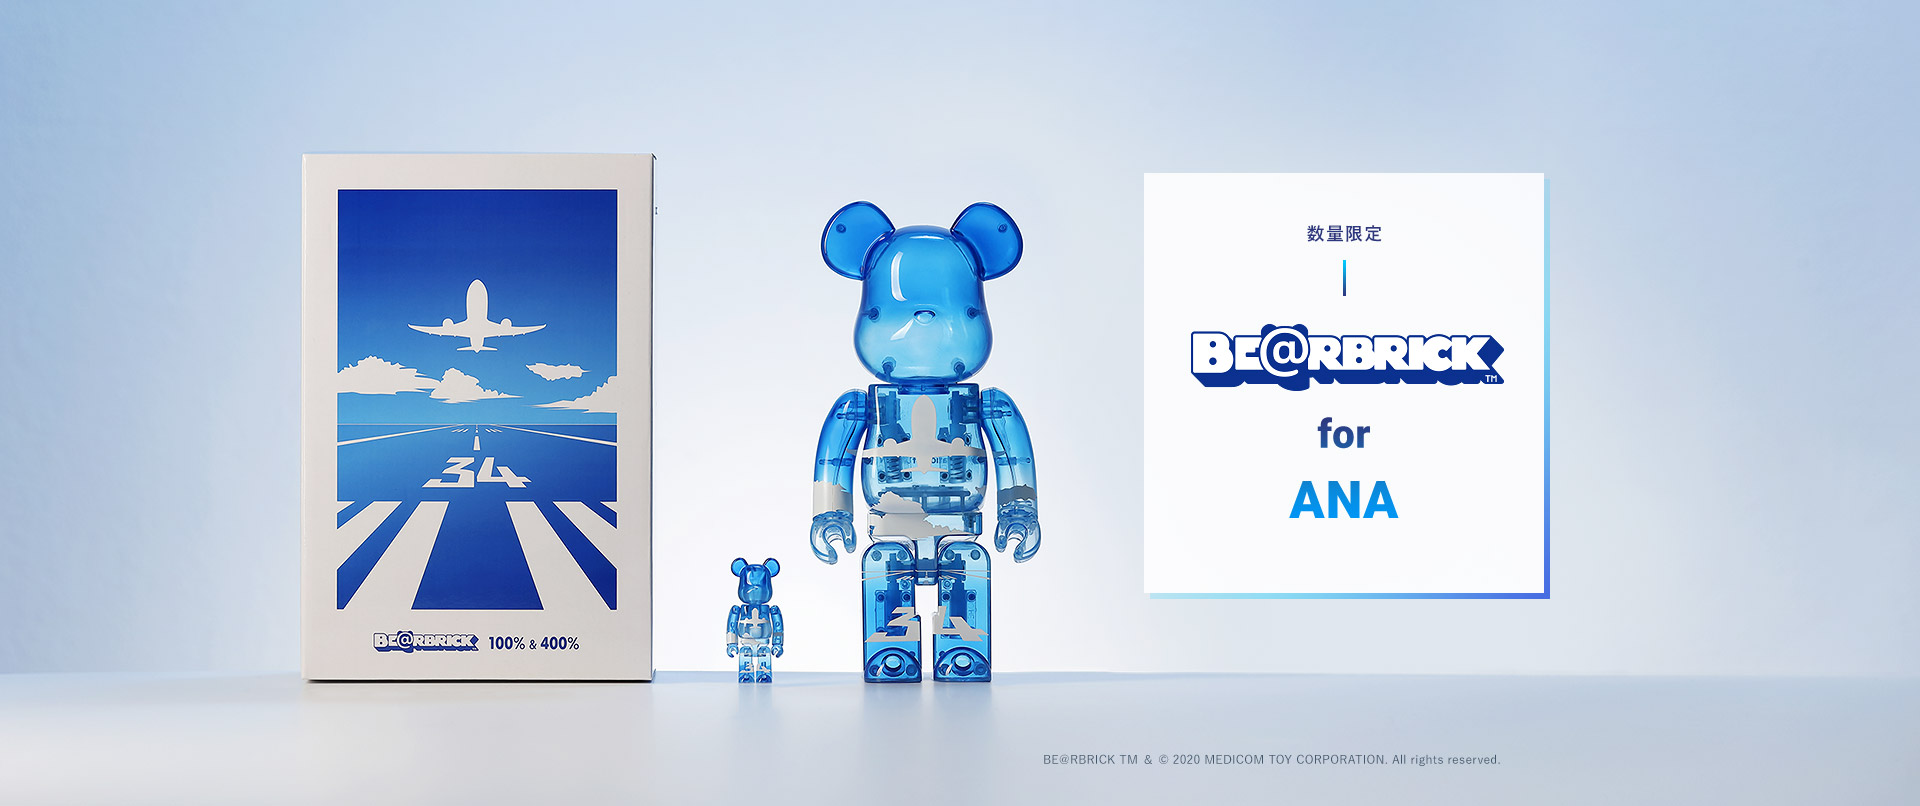 BE@RBRICK for ANA